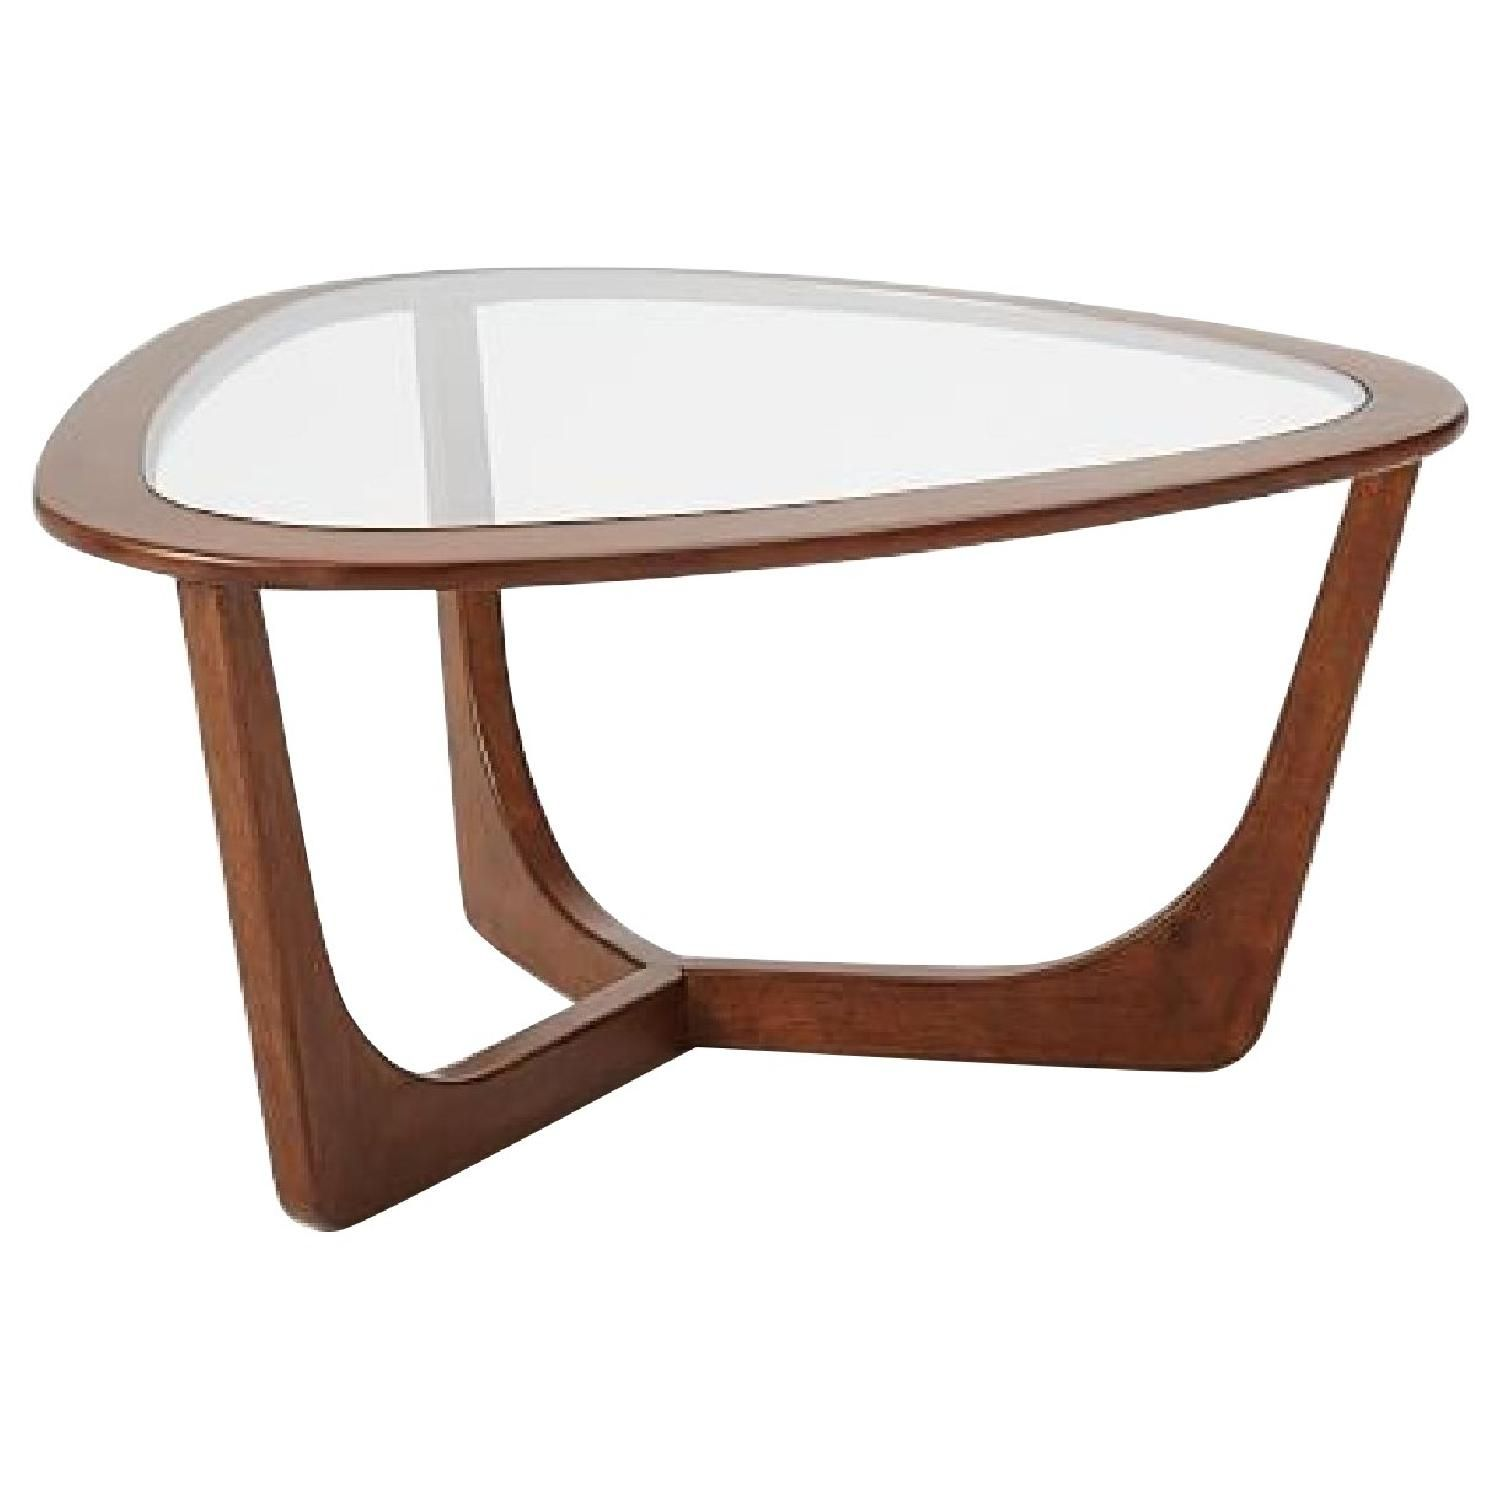 This Is A West Elm Mitchell Coffee Table For 180 00 From West Elm Site Strike A Cord The Glass Top Coffee Table West Elm Coffee Table Modern Coffee Tables